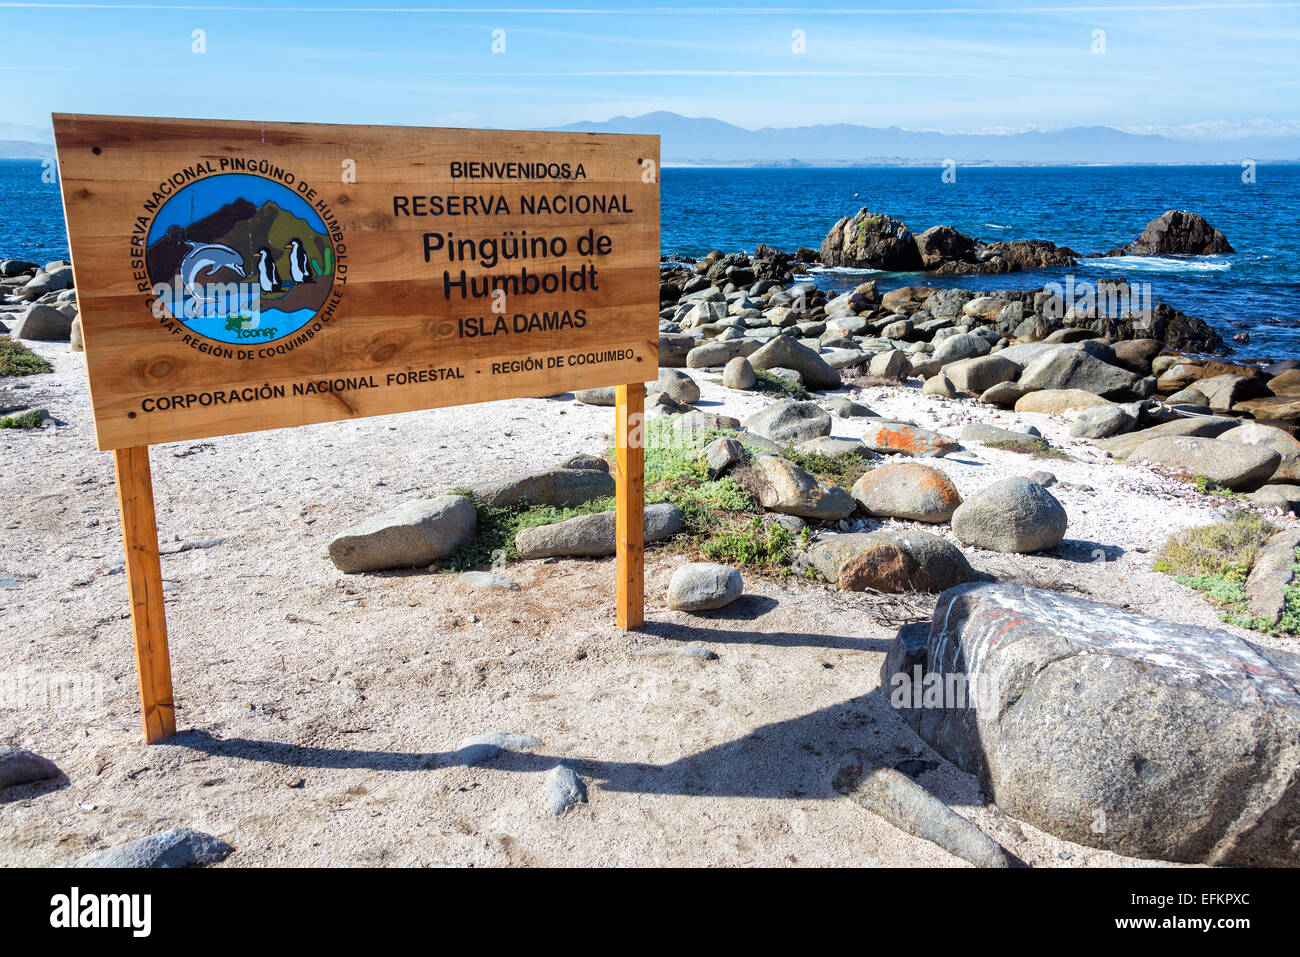 Sign for the Humbolt Pinguin National Reserve in Chile Stock Photo